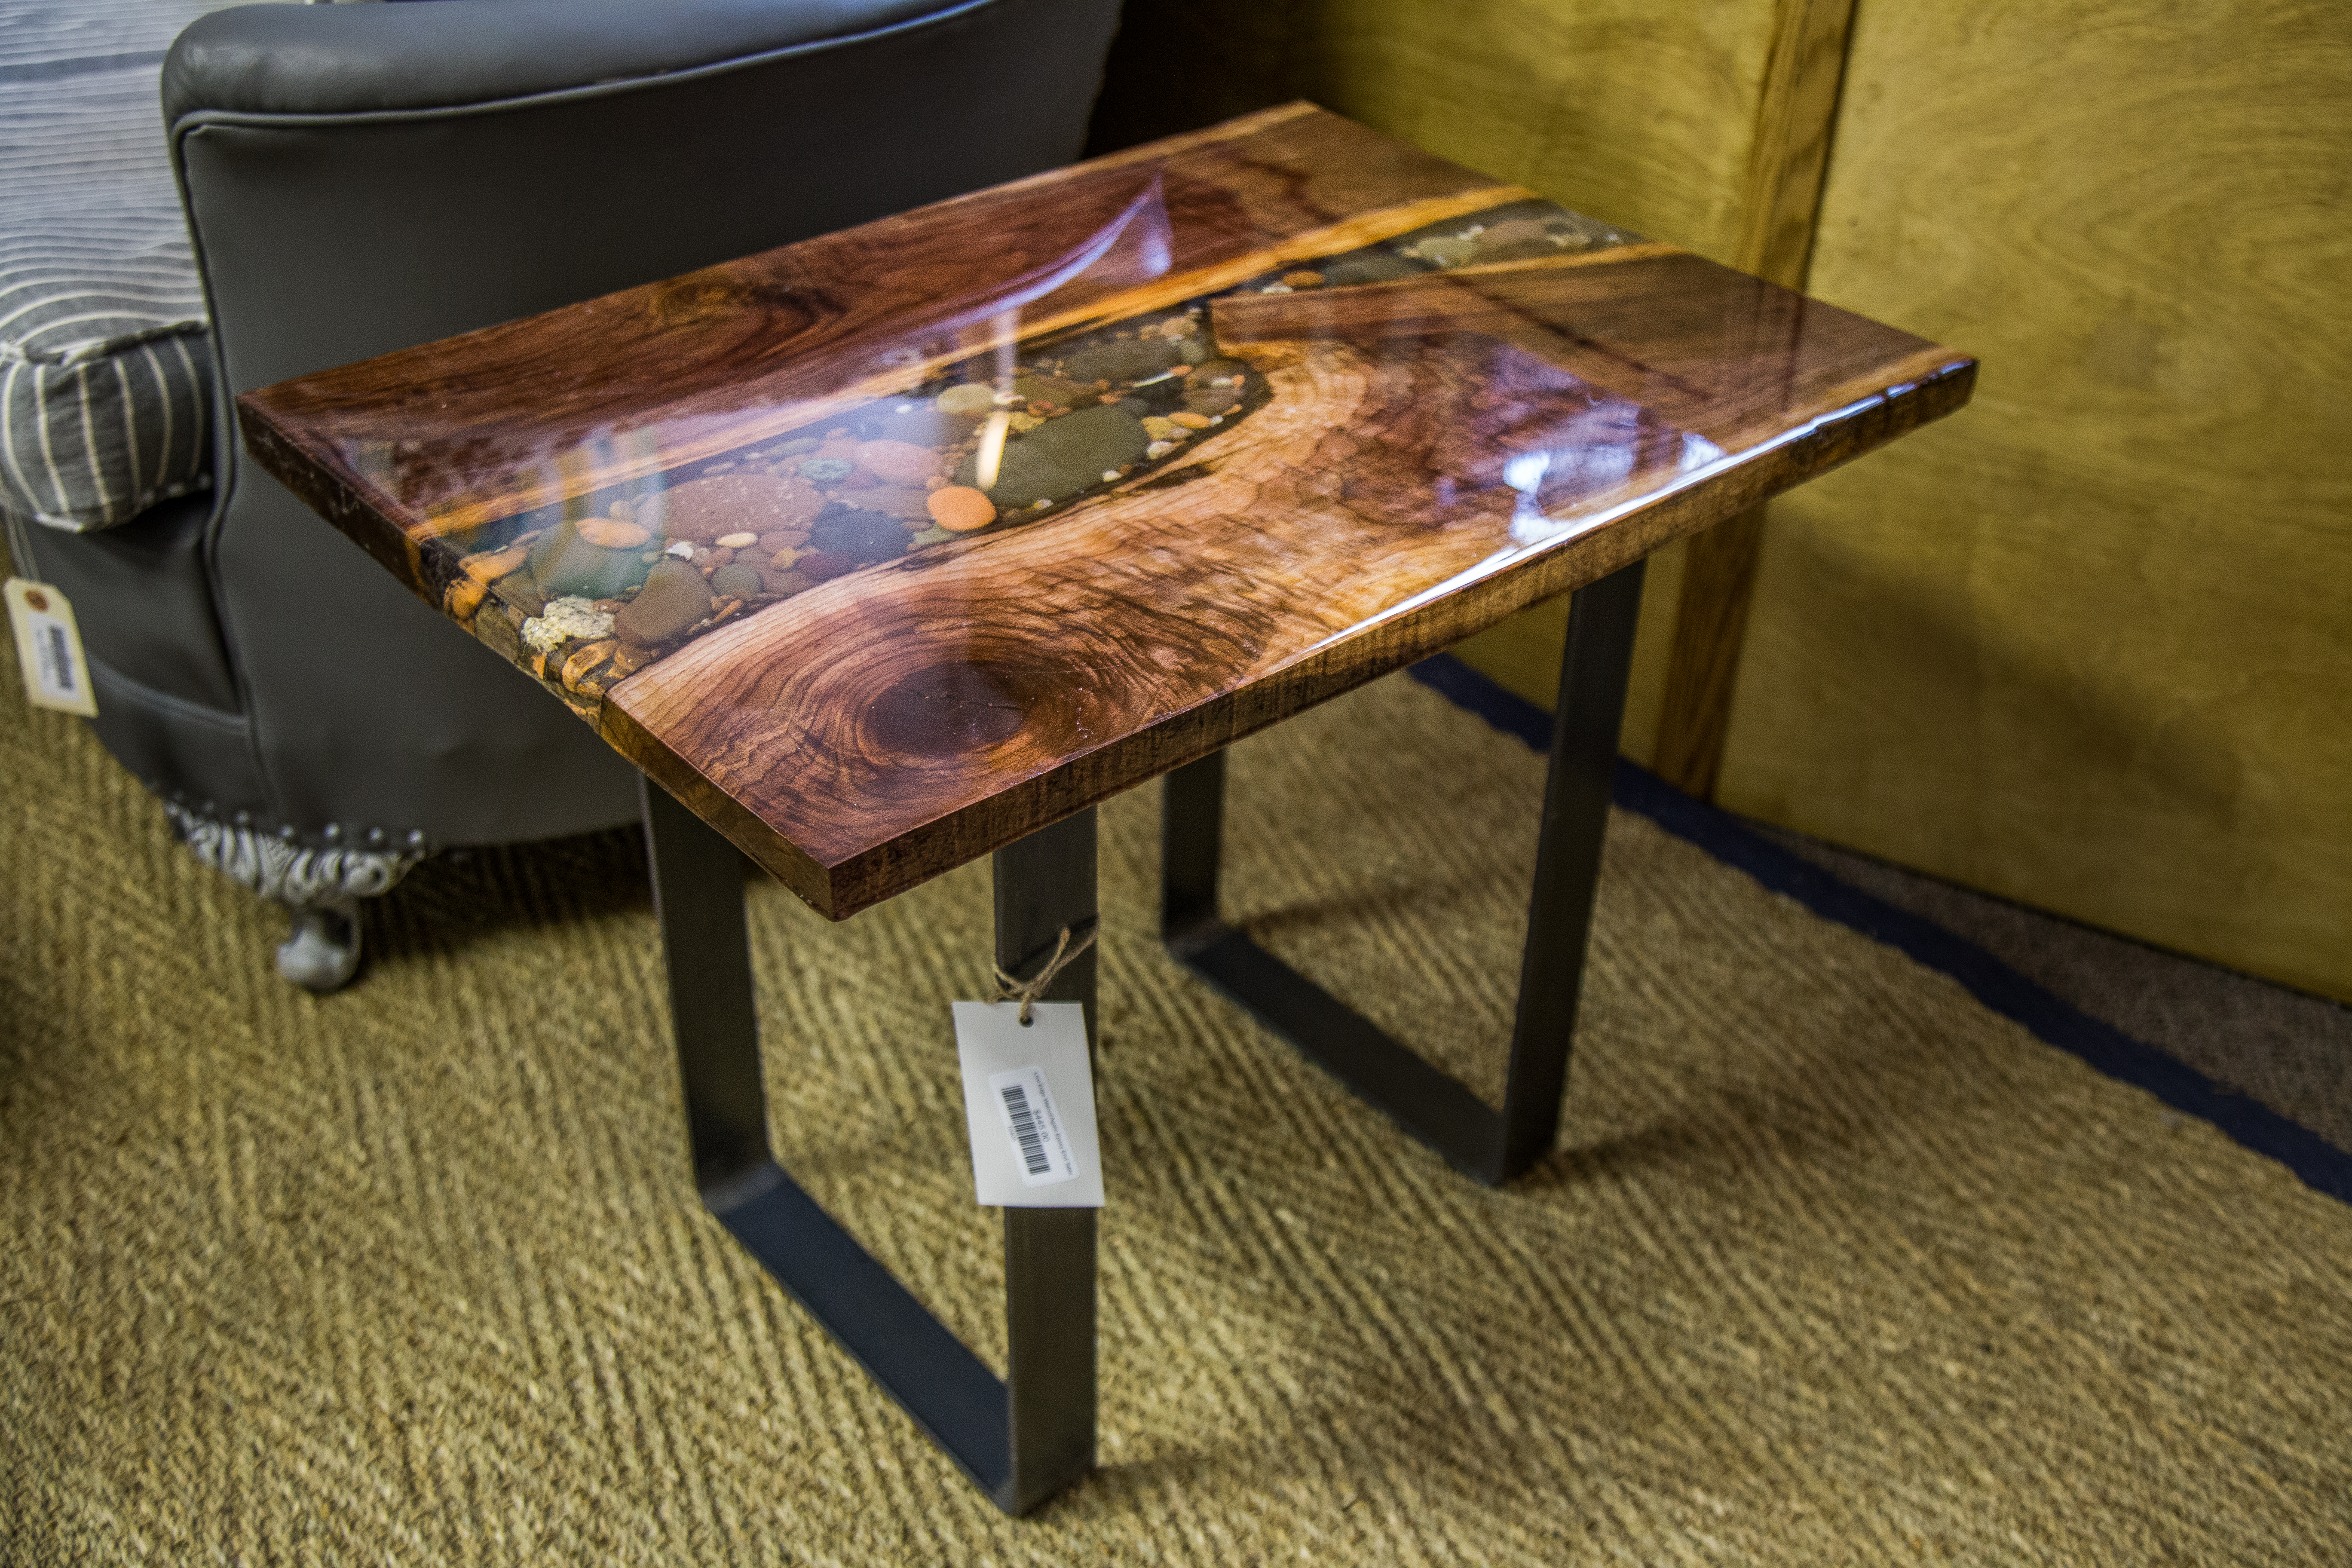 Black Walnut Table With Lake Superior Rock And Agate Inlay   Located At  That Old Blue